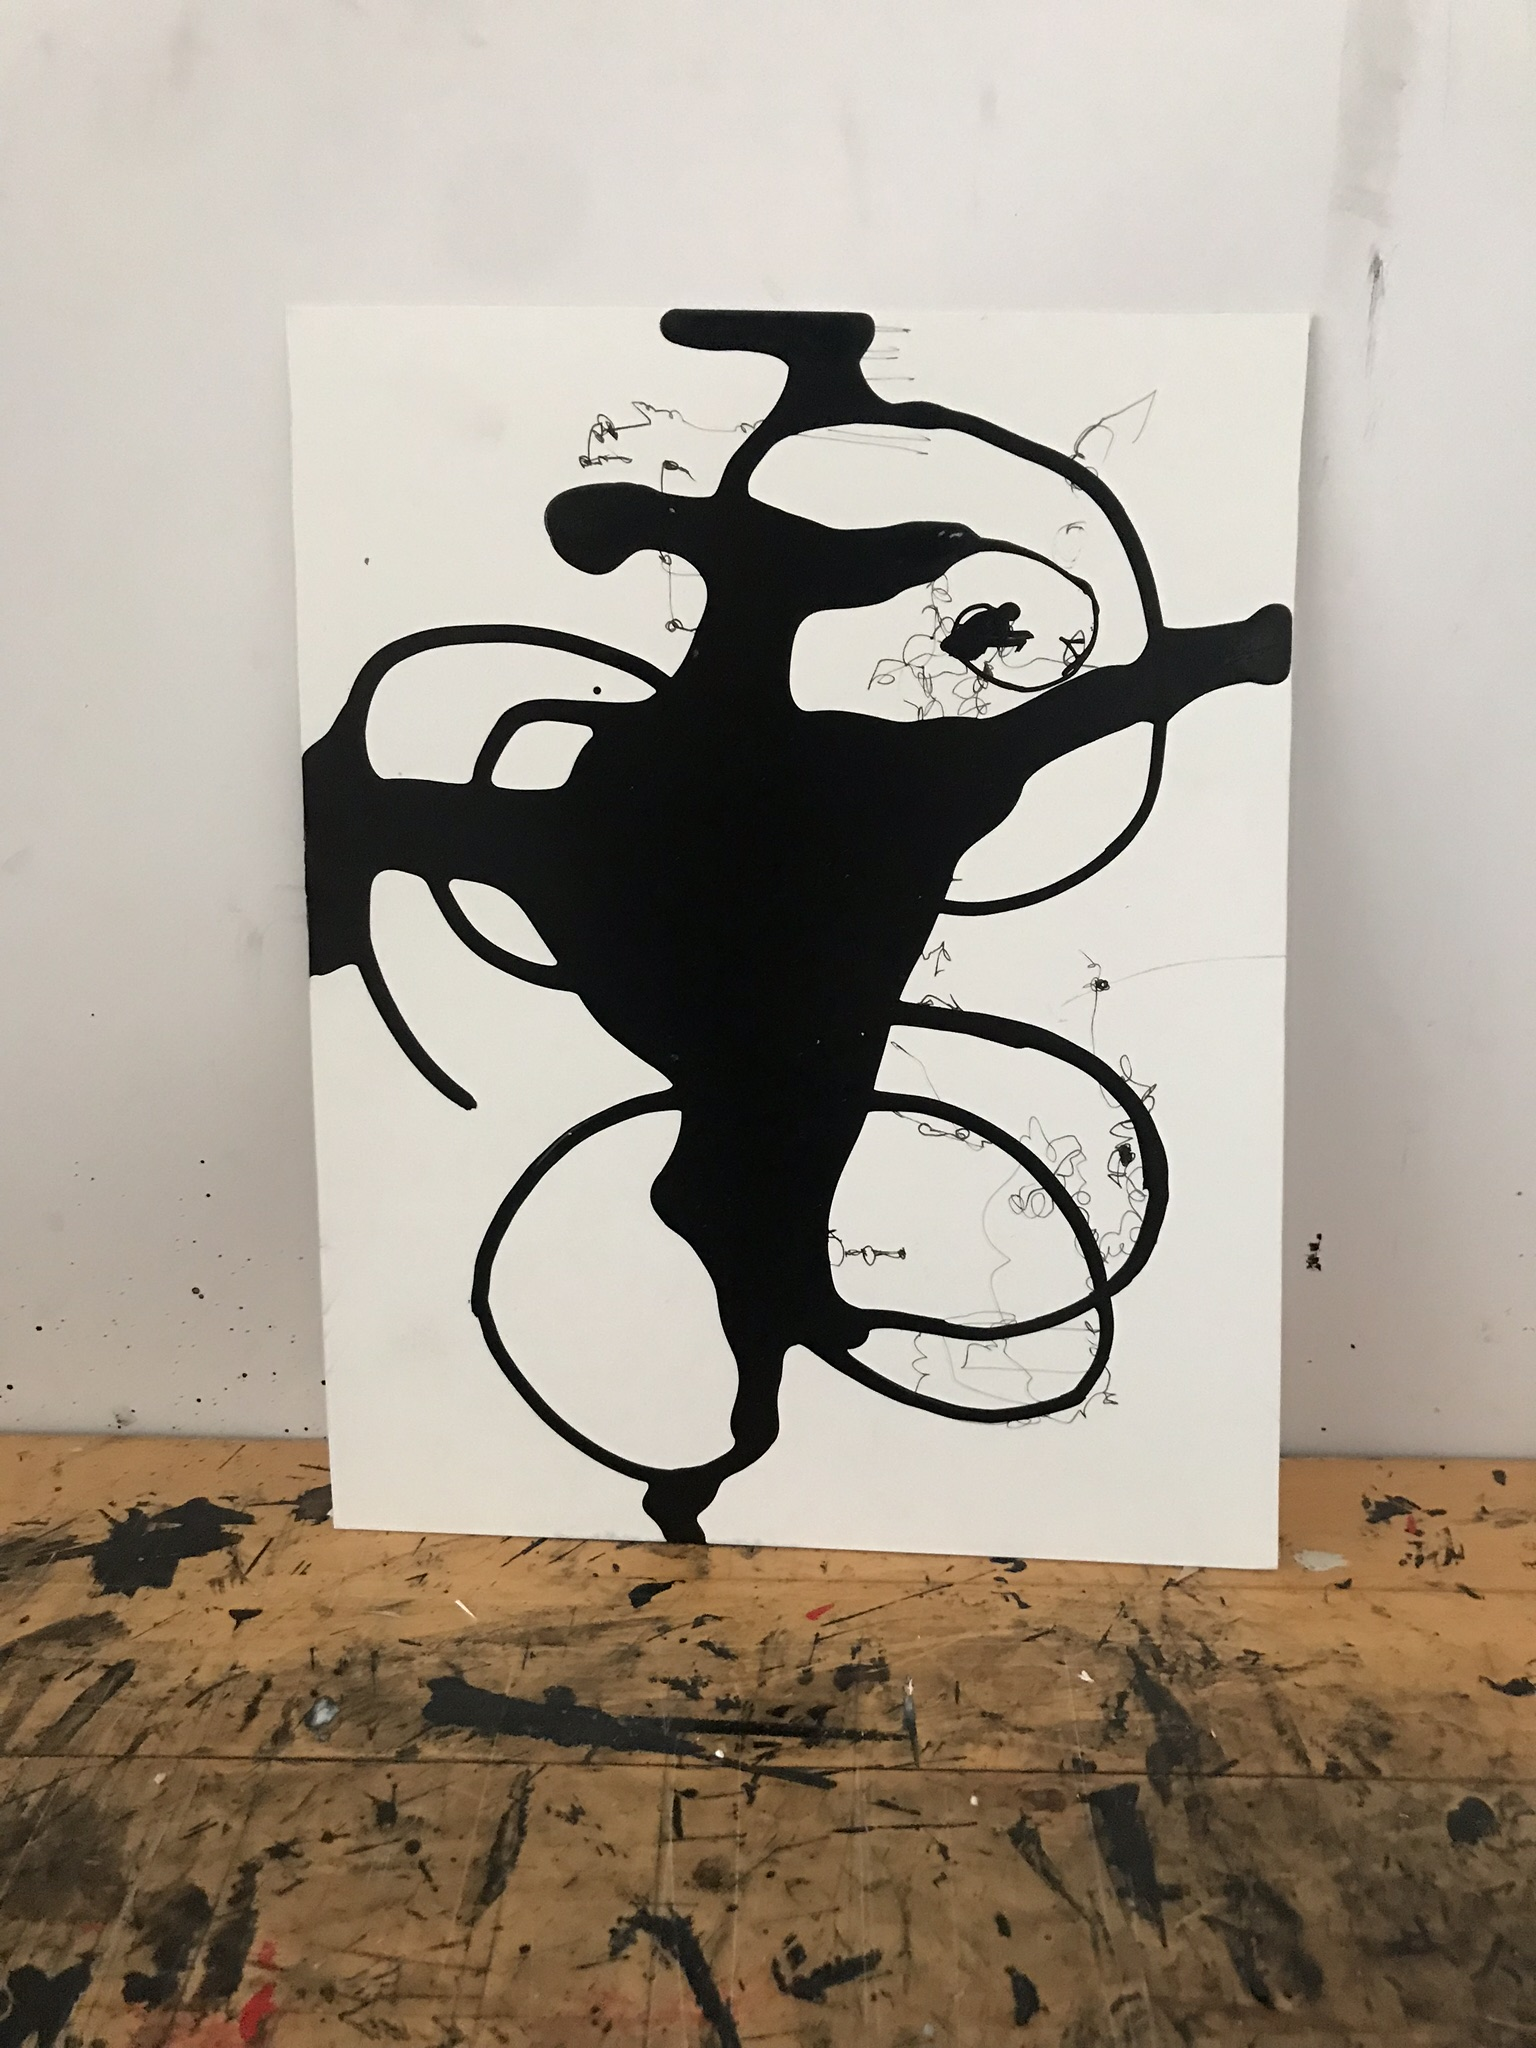 drawings, paintings, illustrative, landscape, minimalistic, movement, nature, oceans, black, white, acrylic, cardboard, abstract-forms, interior, interior-design, modern, modern-art, Buy original high quality art. Paintings, drawings, limited edition prints & posters by talented artists.